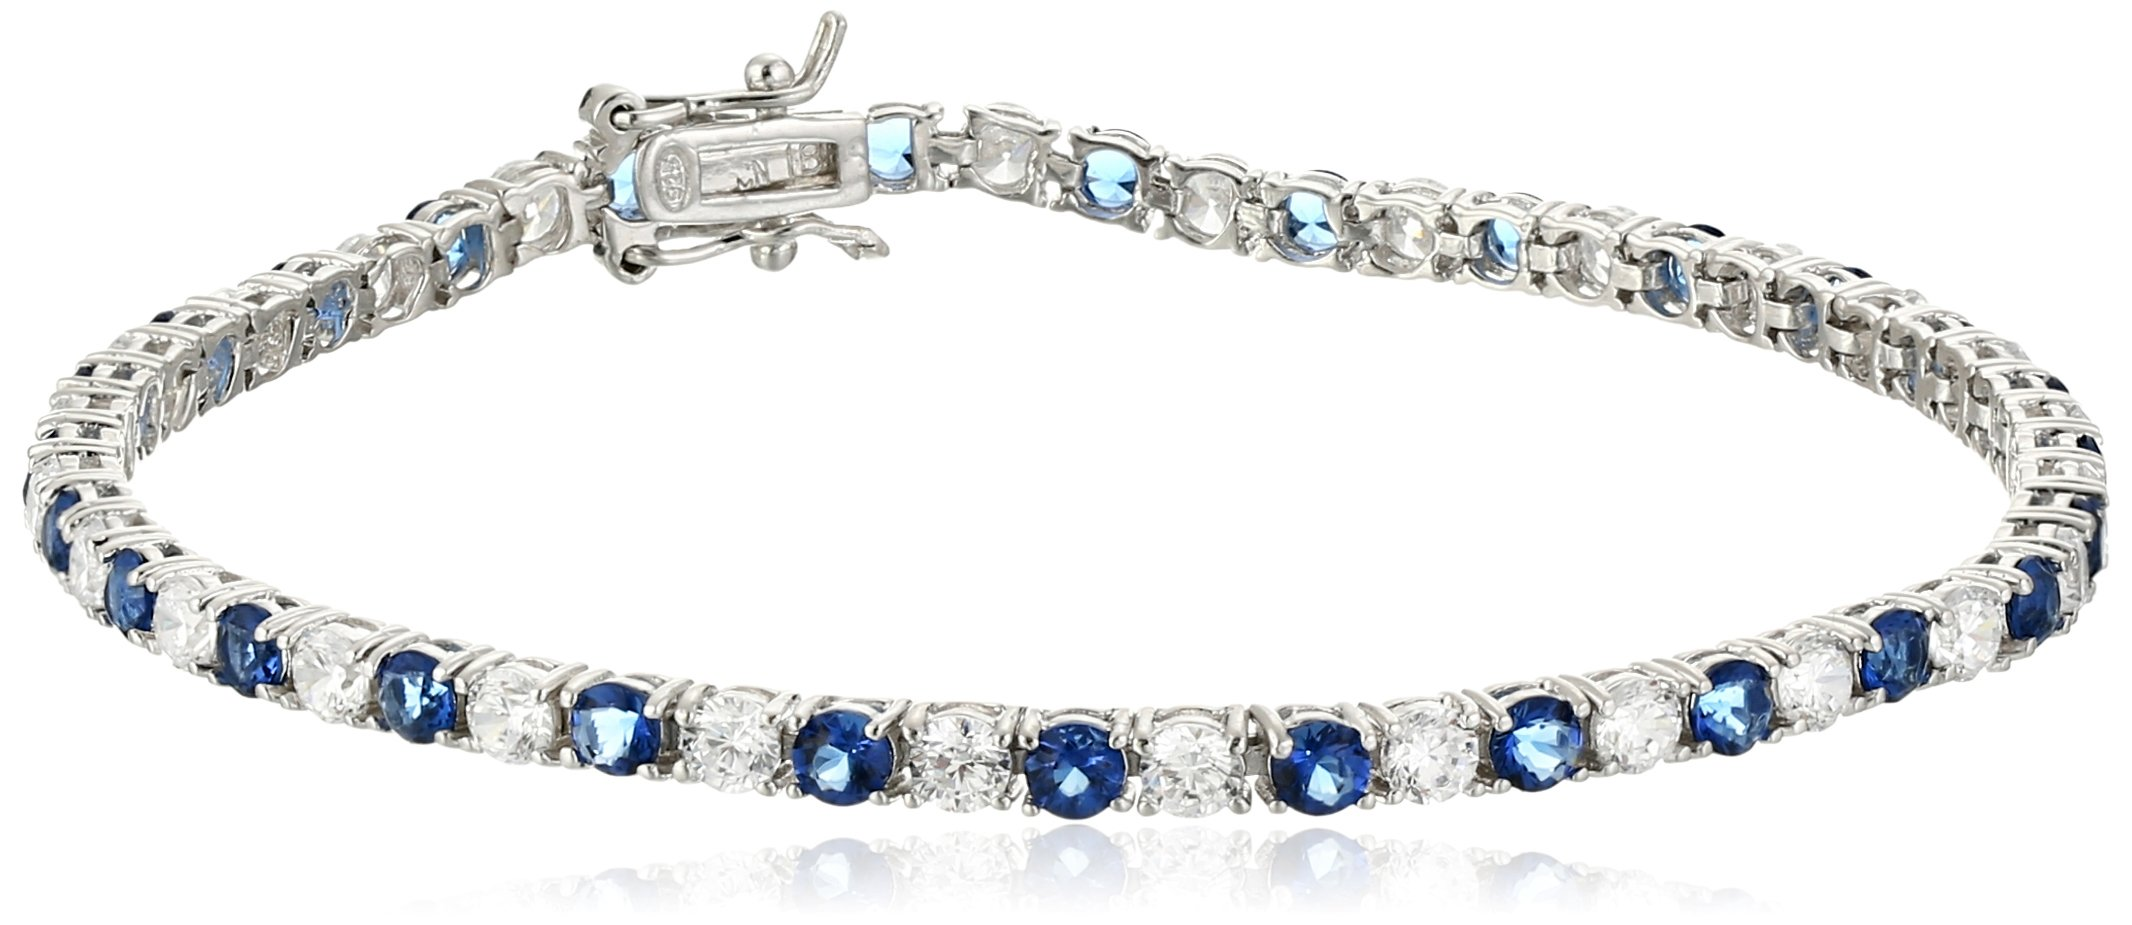 Sterling Silver Alternating Sapphire and White Prong Set AAA Cubic Zirconia Tennis Bracelet, 7.5'' (5.9 cttw) by Amazon Collection